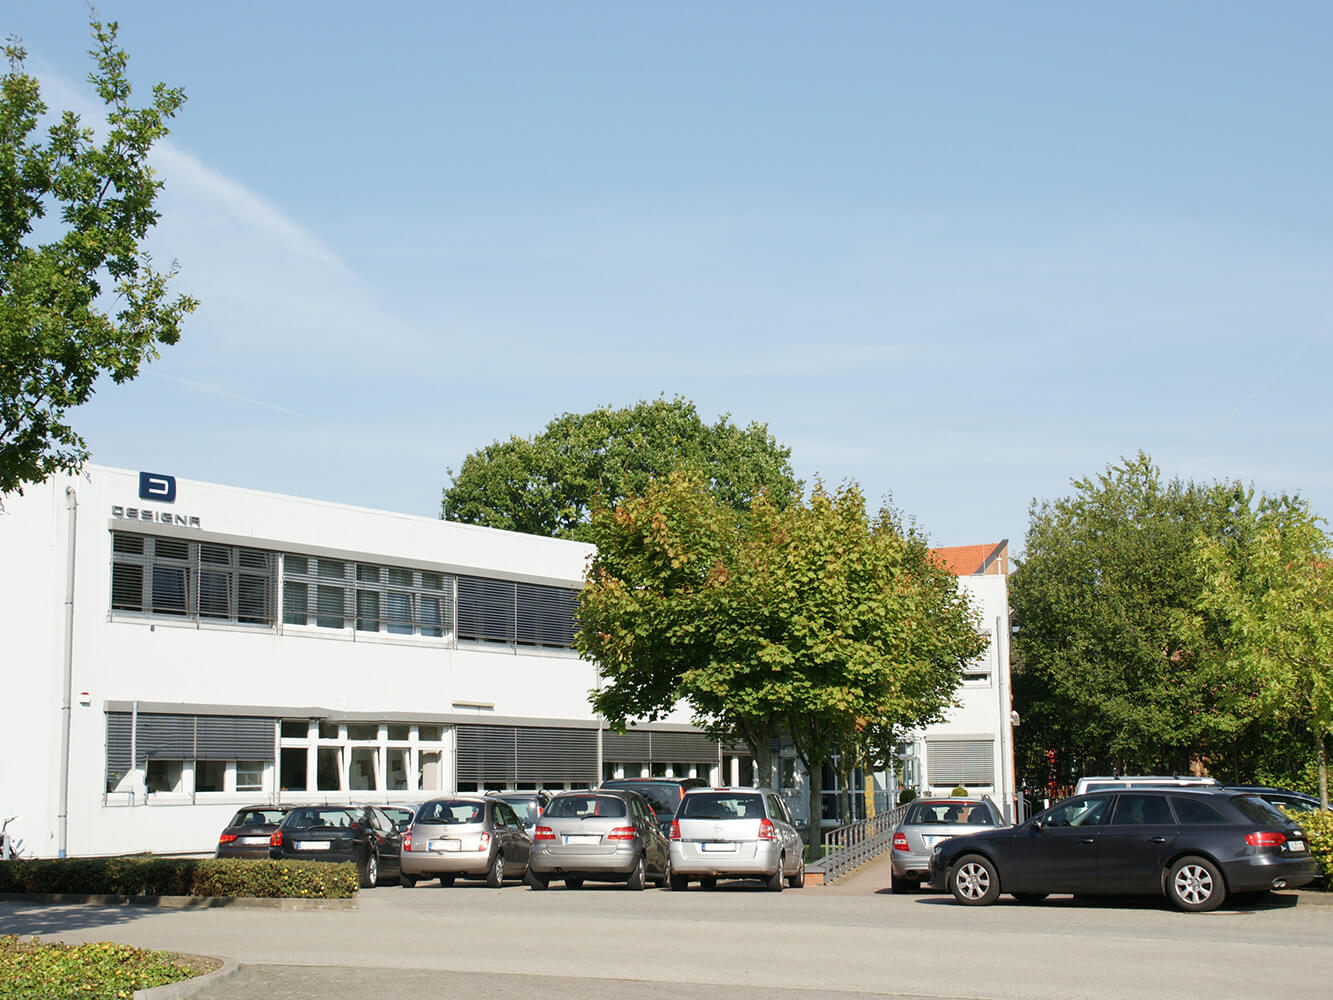 DESIGNA premises in Kiel